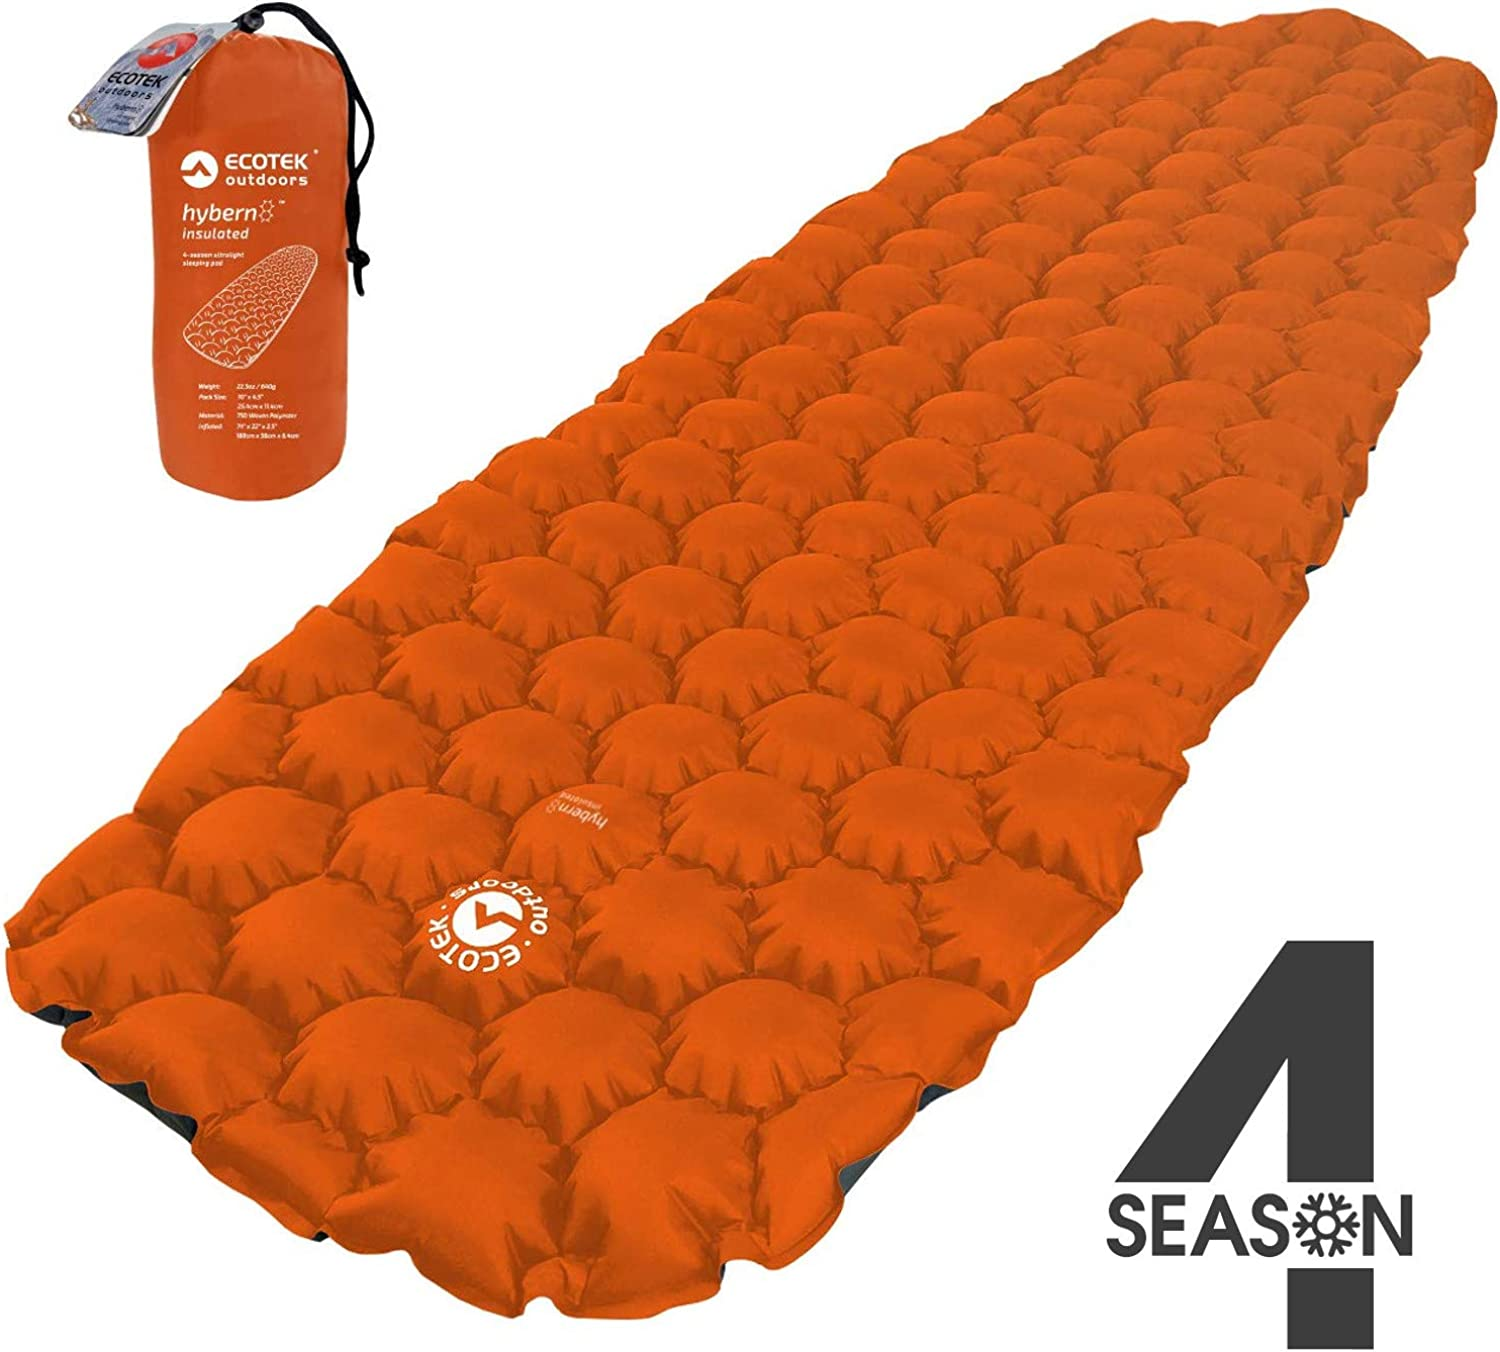 ECOTEK Outdoors Insulated Hybern8 4 Season Ultralight Inflatable Sleeping Pad